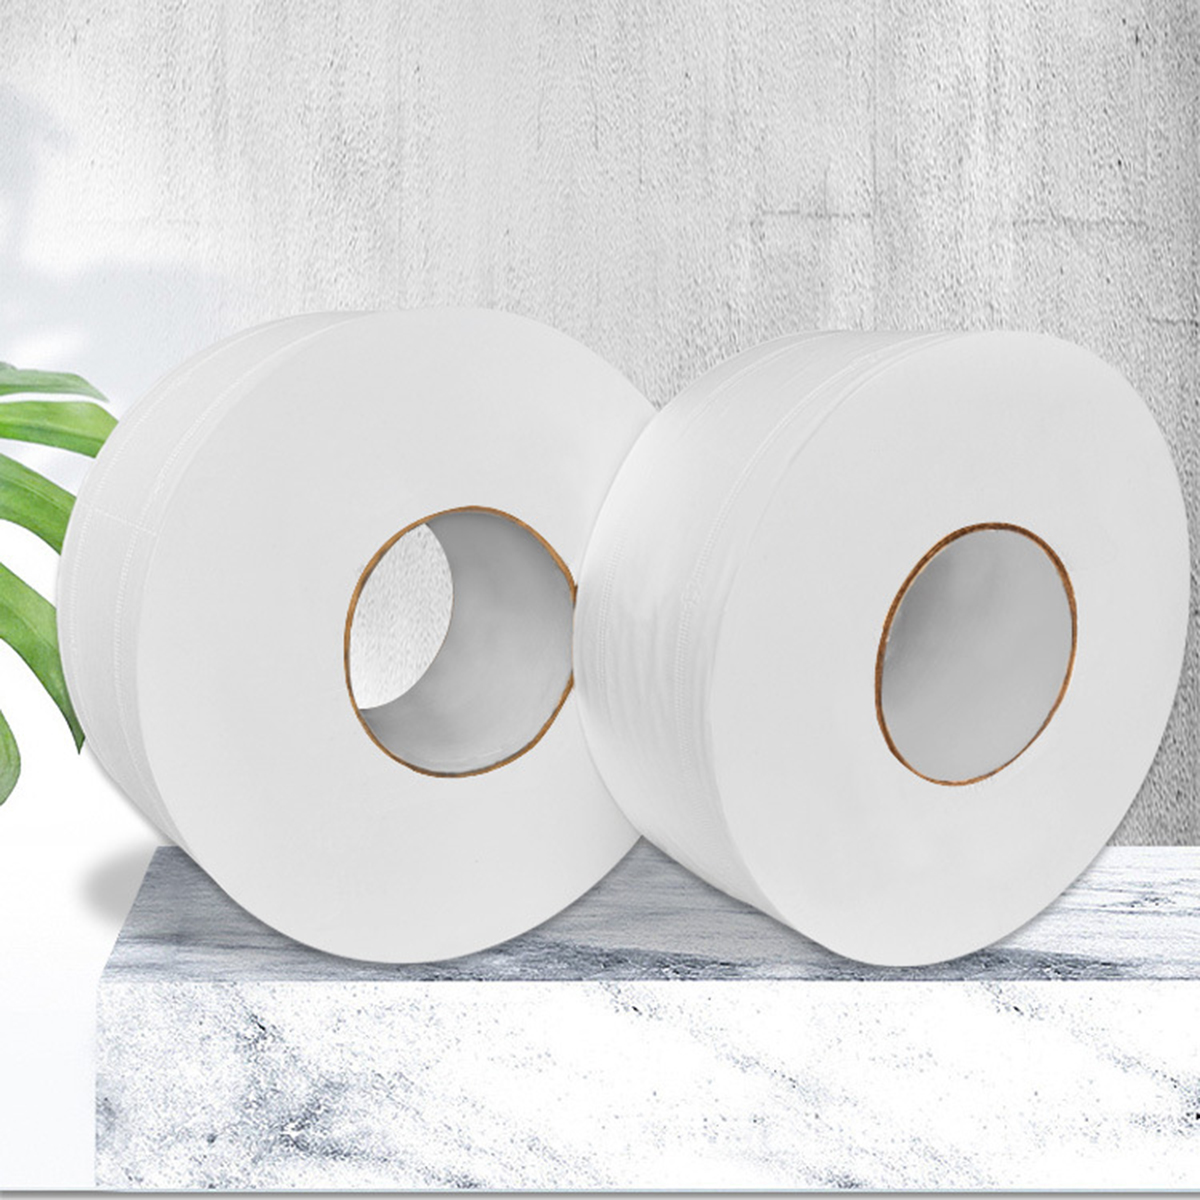 1 Roll Top Quality Jumbo Roll Toilet Paper 4-Layer Native Wood Soft Toilet Paper Pulp Home Rolling Paper Strong Water Absorption 1